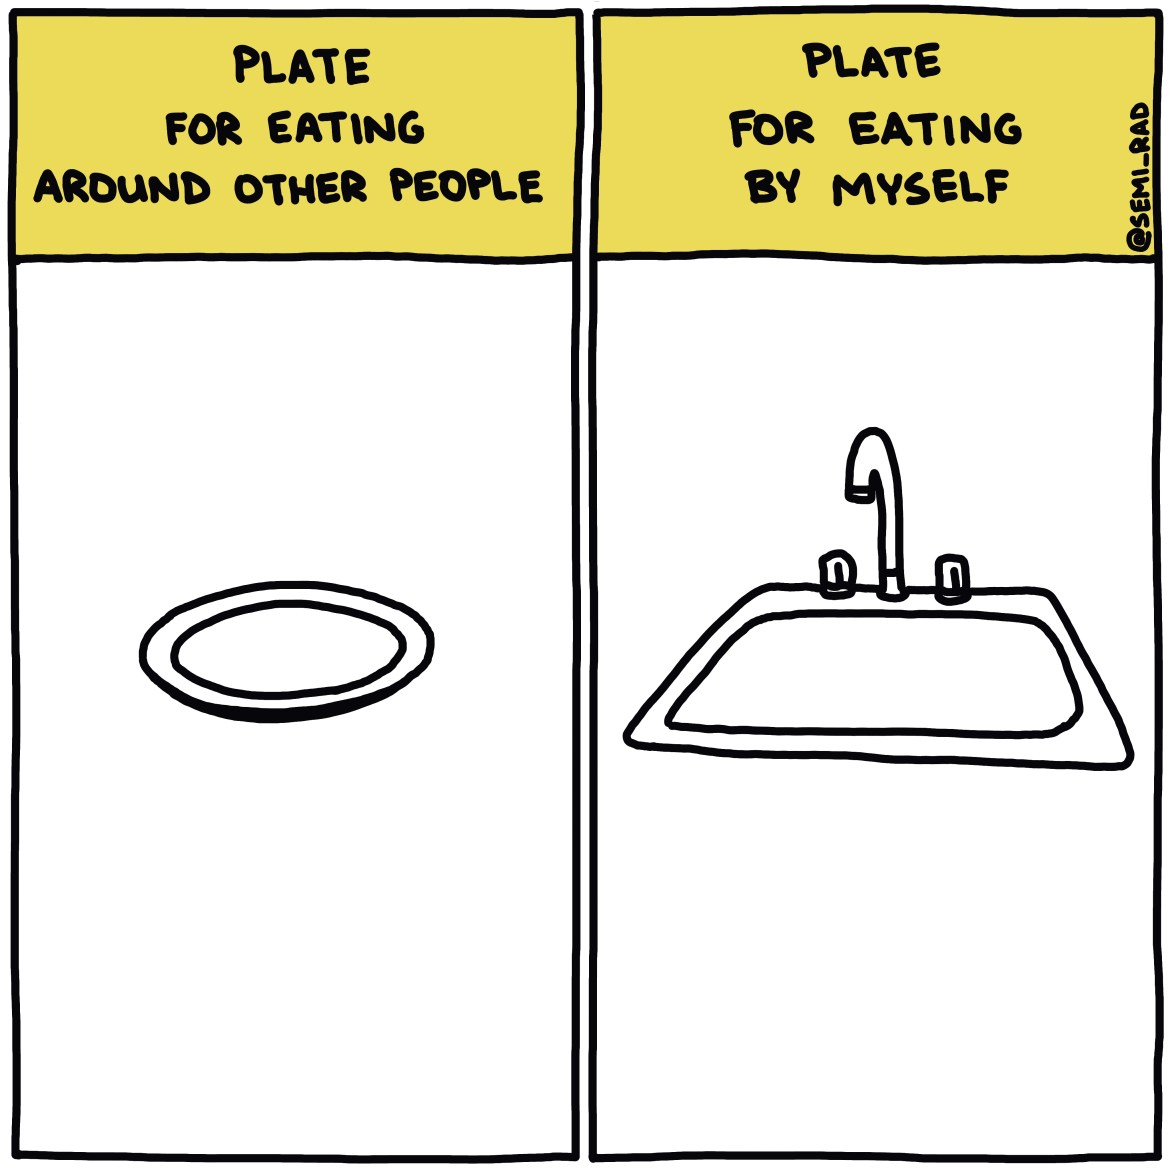 Semi-Rad Chart - Plate For Eating Around Other People Vs. Plate For Eating By Myself